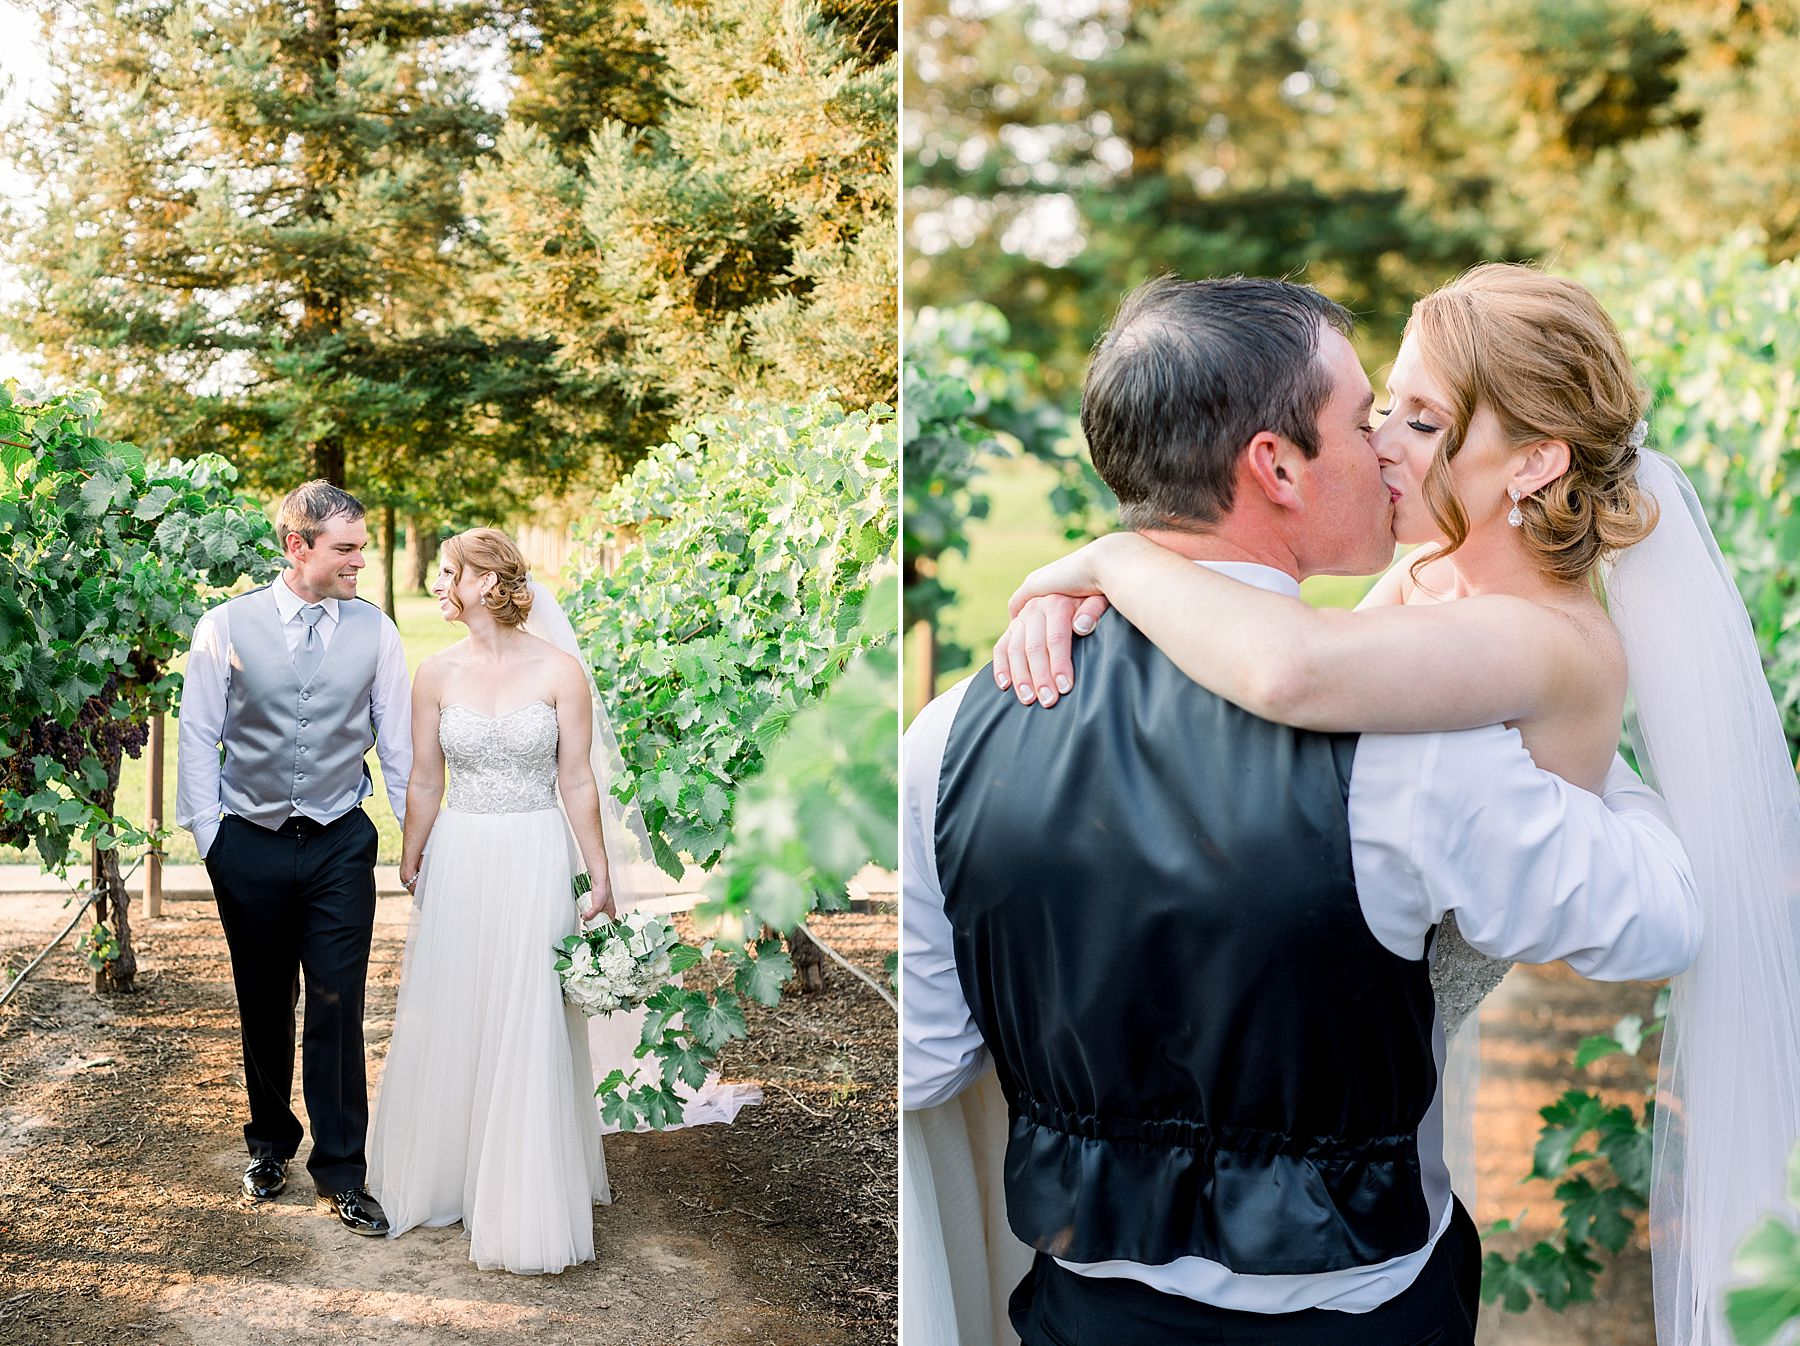 Wine and Roses Wedding - Wine and Roses Lodi Wedding Photographer - Sacramento Film Wedding Photographer - Ashley Baumgartner - Sacramento Luxury Wedding Photographer_0044.jpg